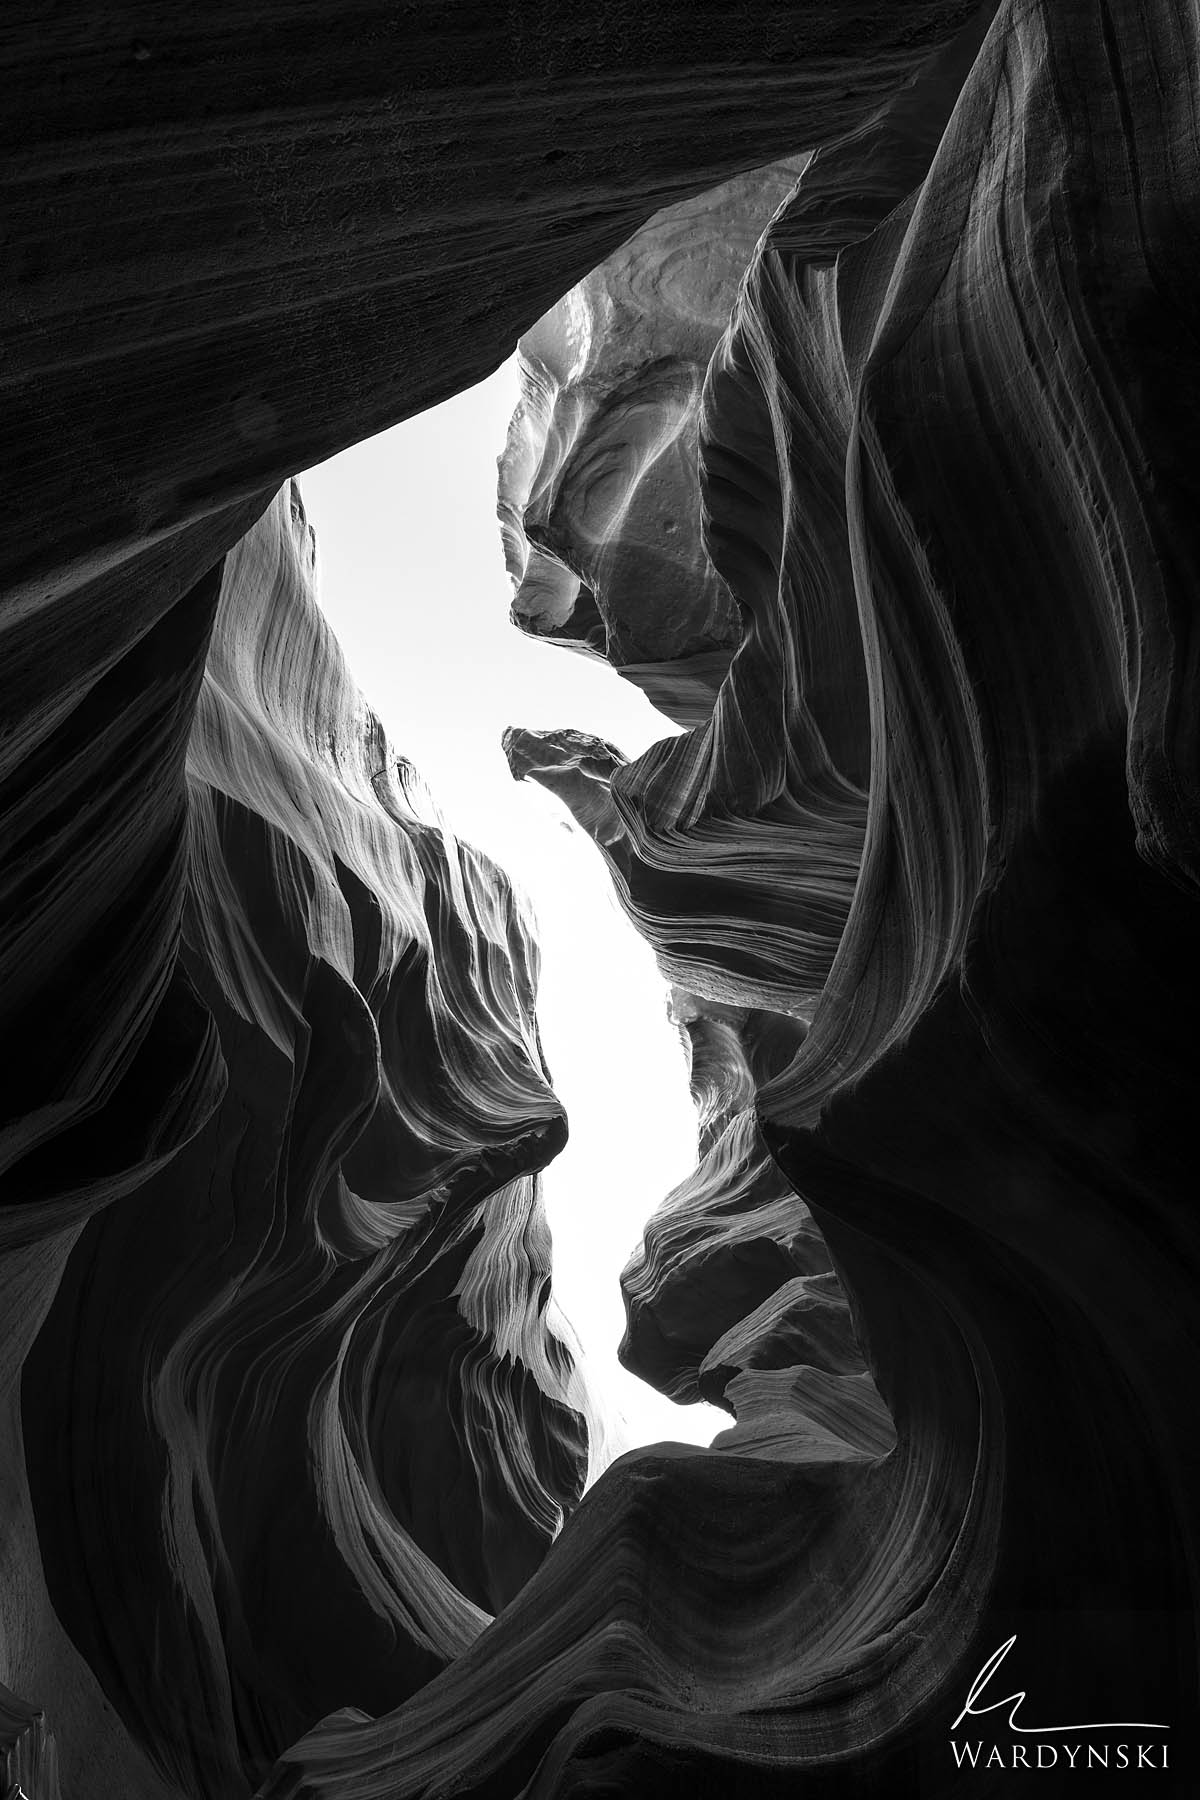 Black and White Fine Art Print | Limited Edition of 50 Like waves frozen in time, hallowed sandstone ripples through Antelope...